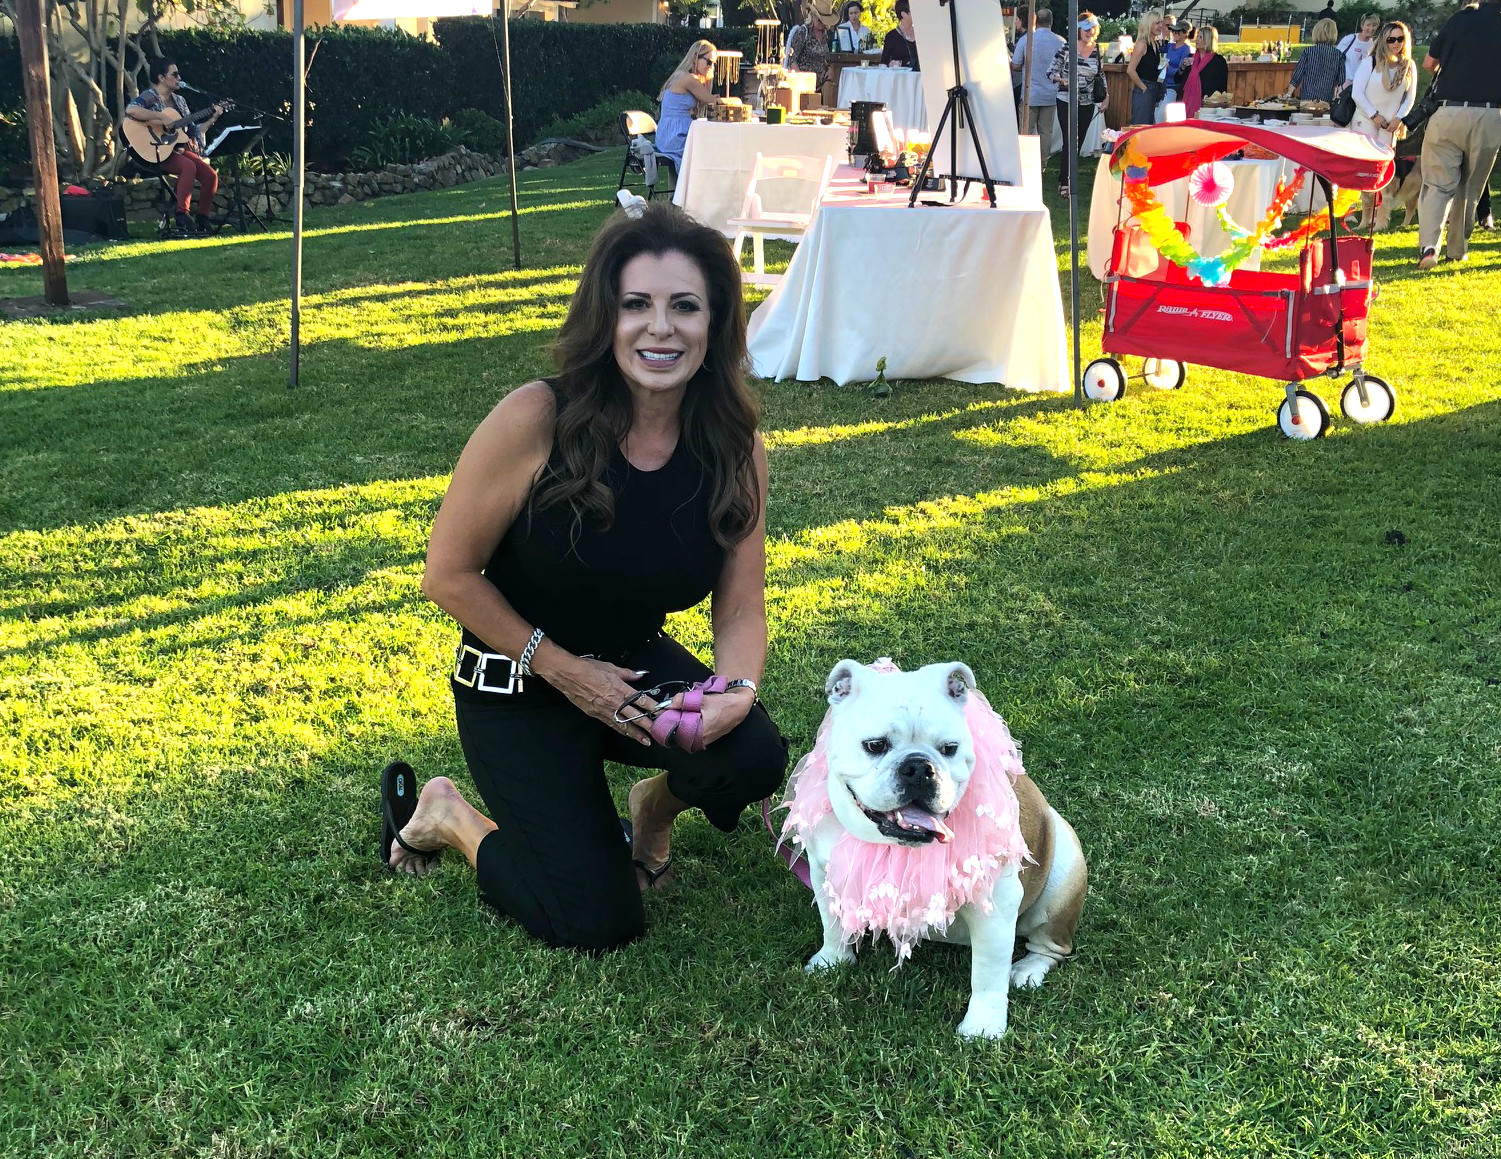 """""""Holli""""day…Anyday! and The Inn at Rancho Santa Fe raise breast cancer awareness and funds"""